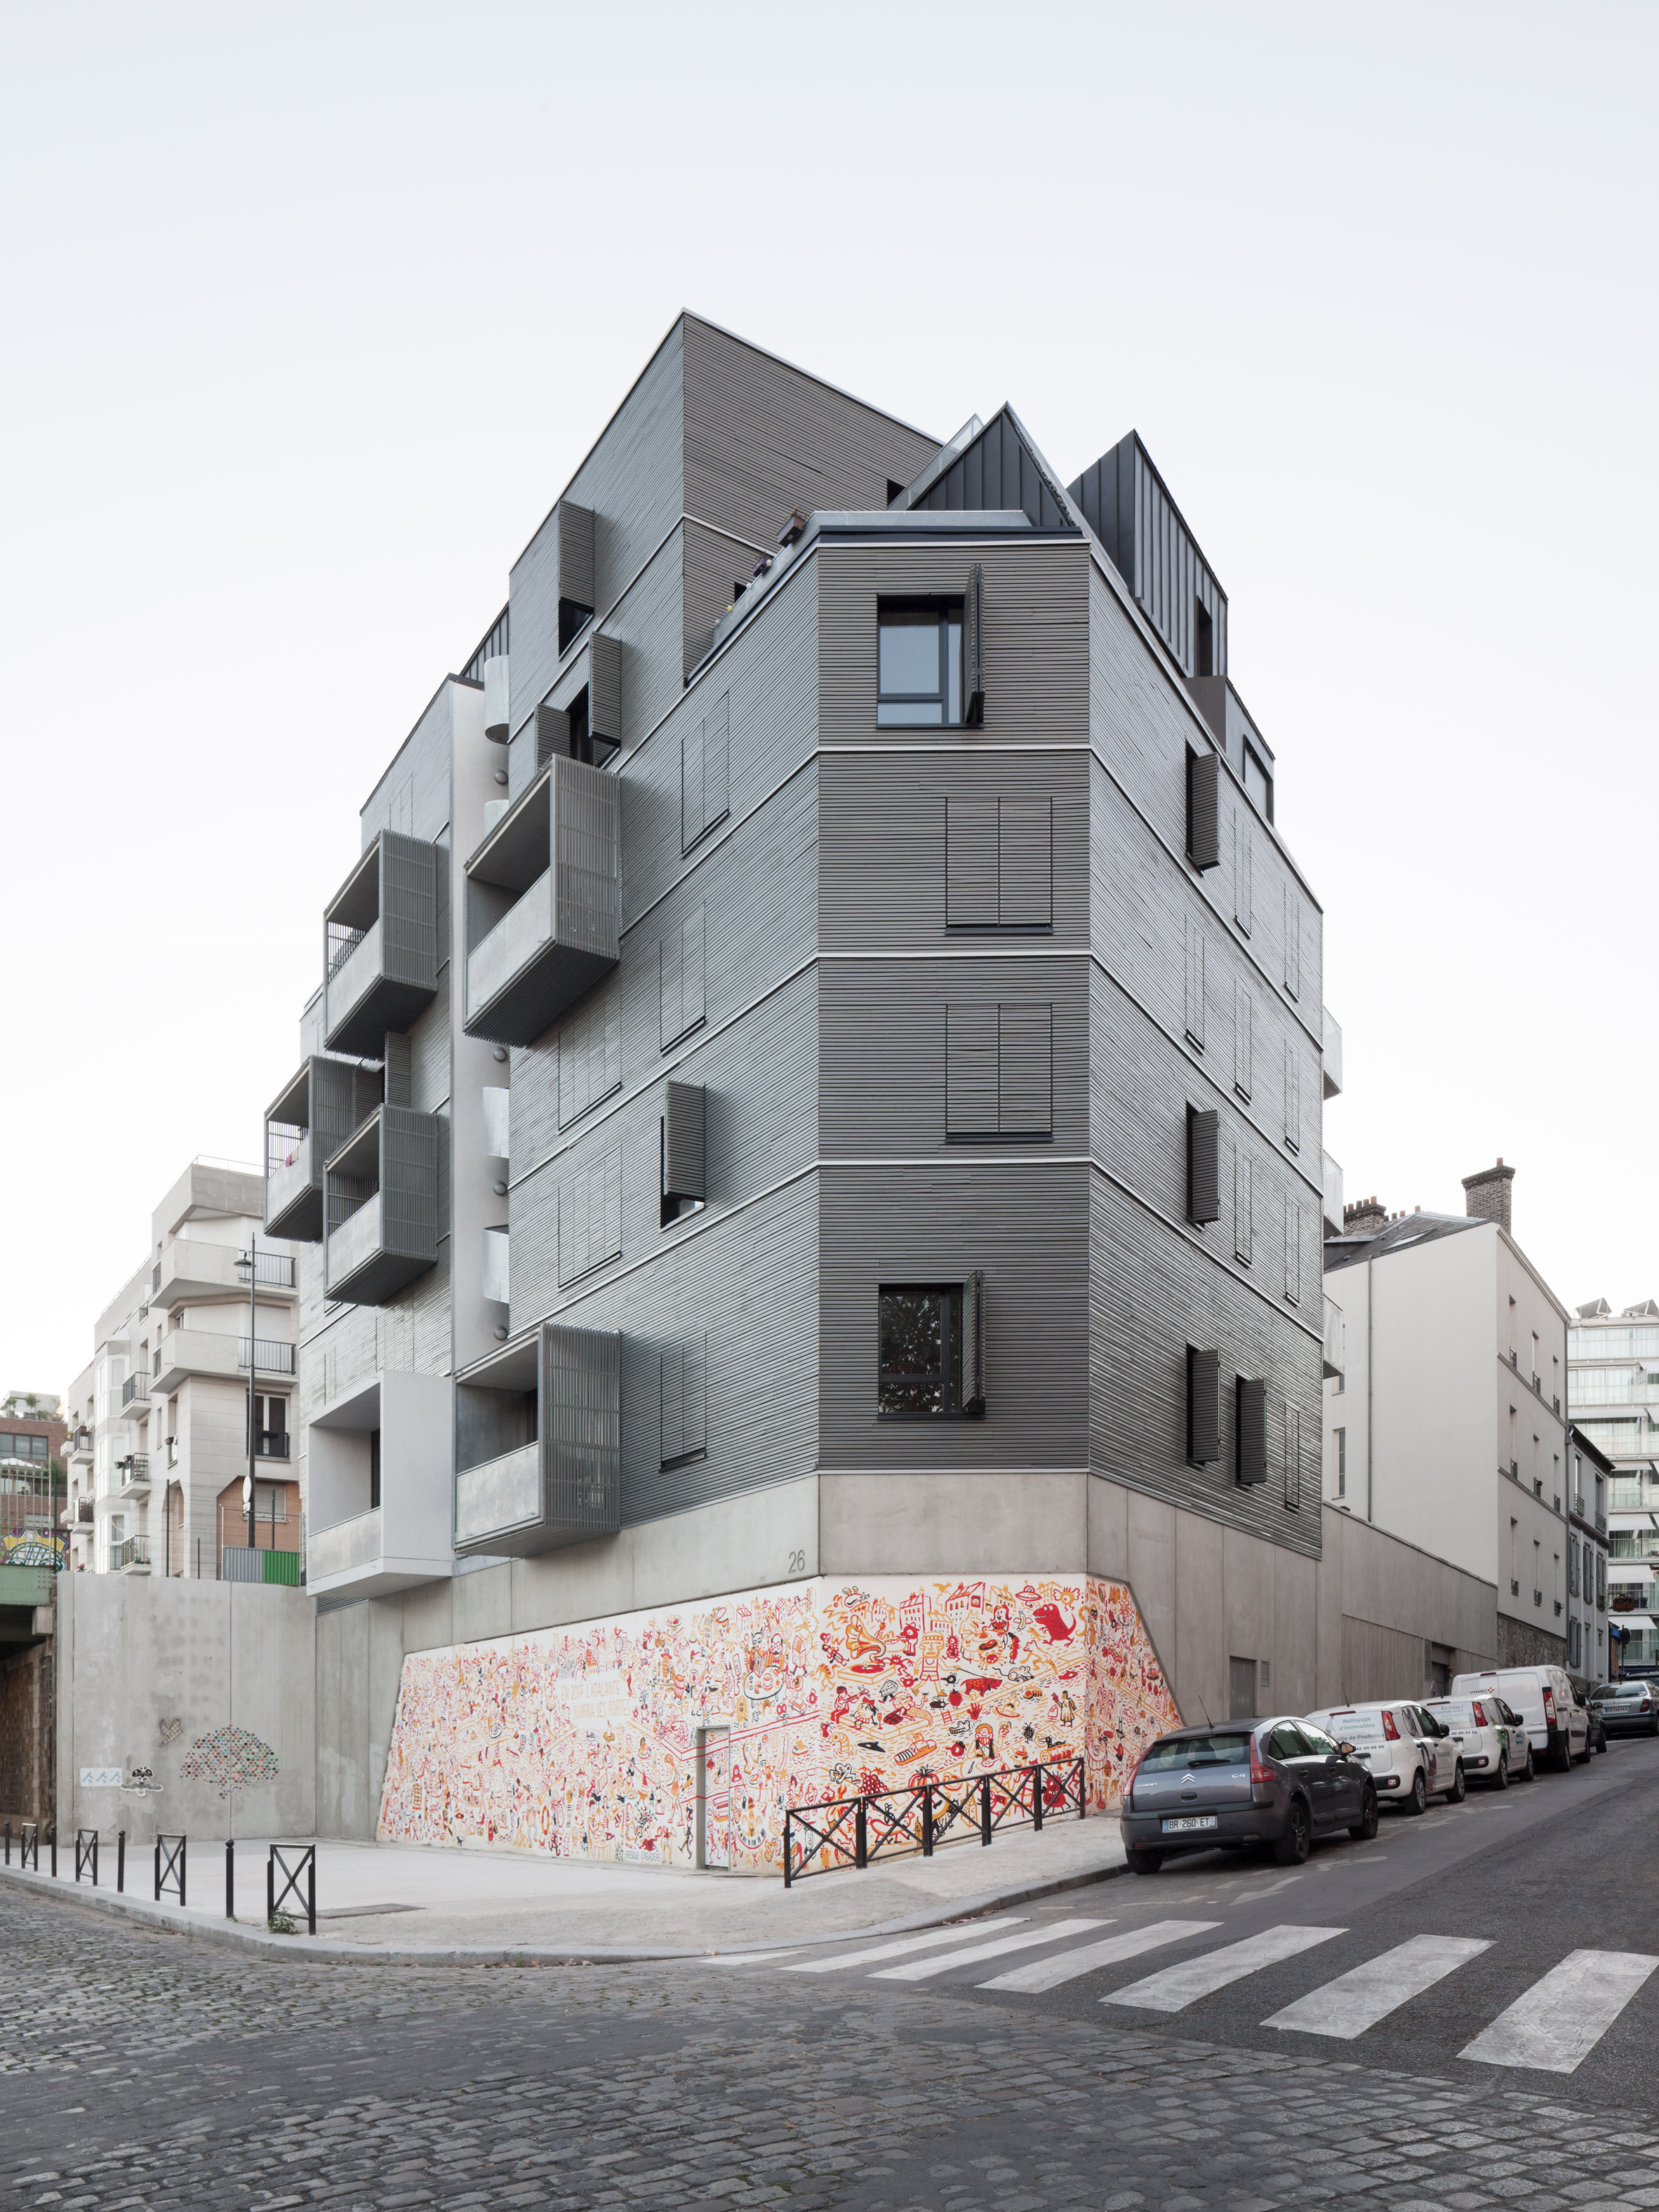 Boxy balconies and spiral staircase feature at Parisian apartment block by Karawitz